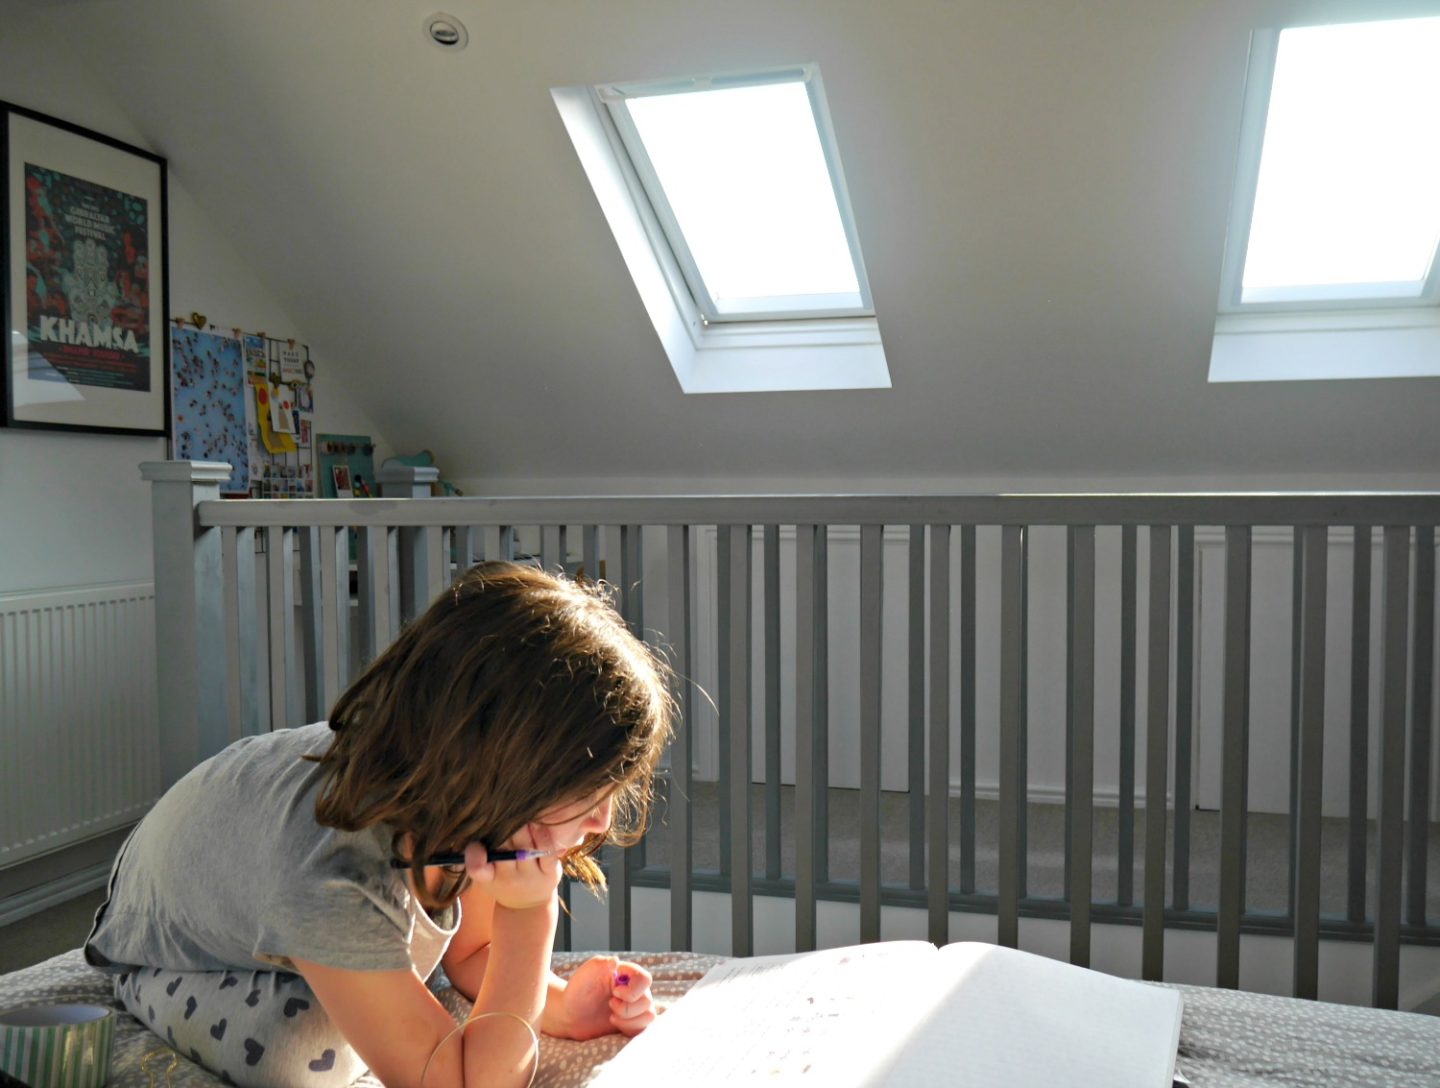 VELUX Loft conversion ideas for a Victorian terrace house in London - tips for having a loft conversion or attic extension